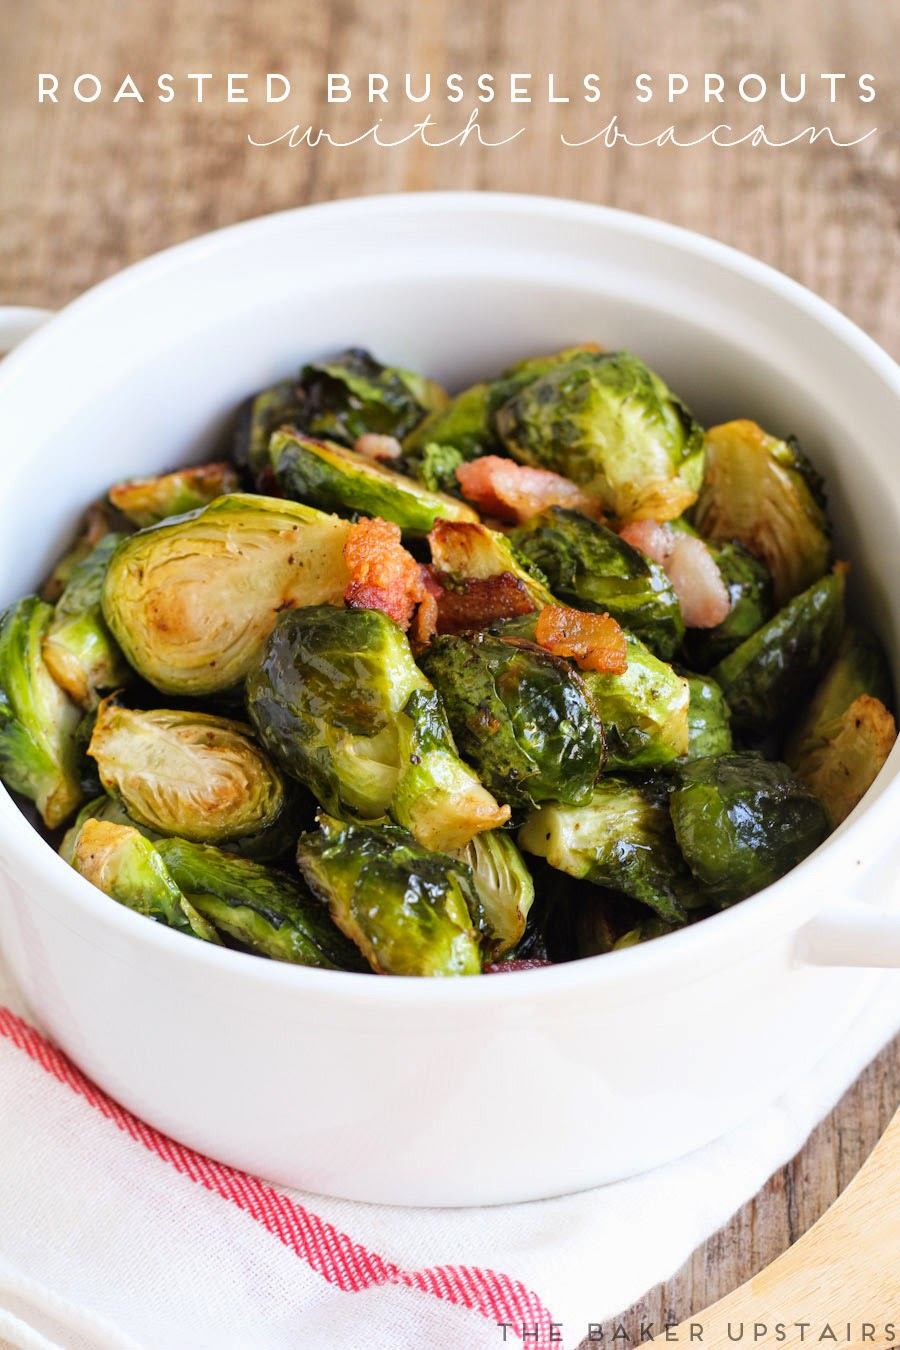 Roasted brussels sprouts with bacon - so deliciously flavorful and quick and easy to make!